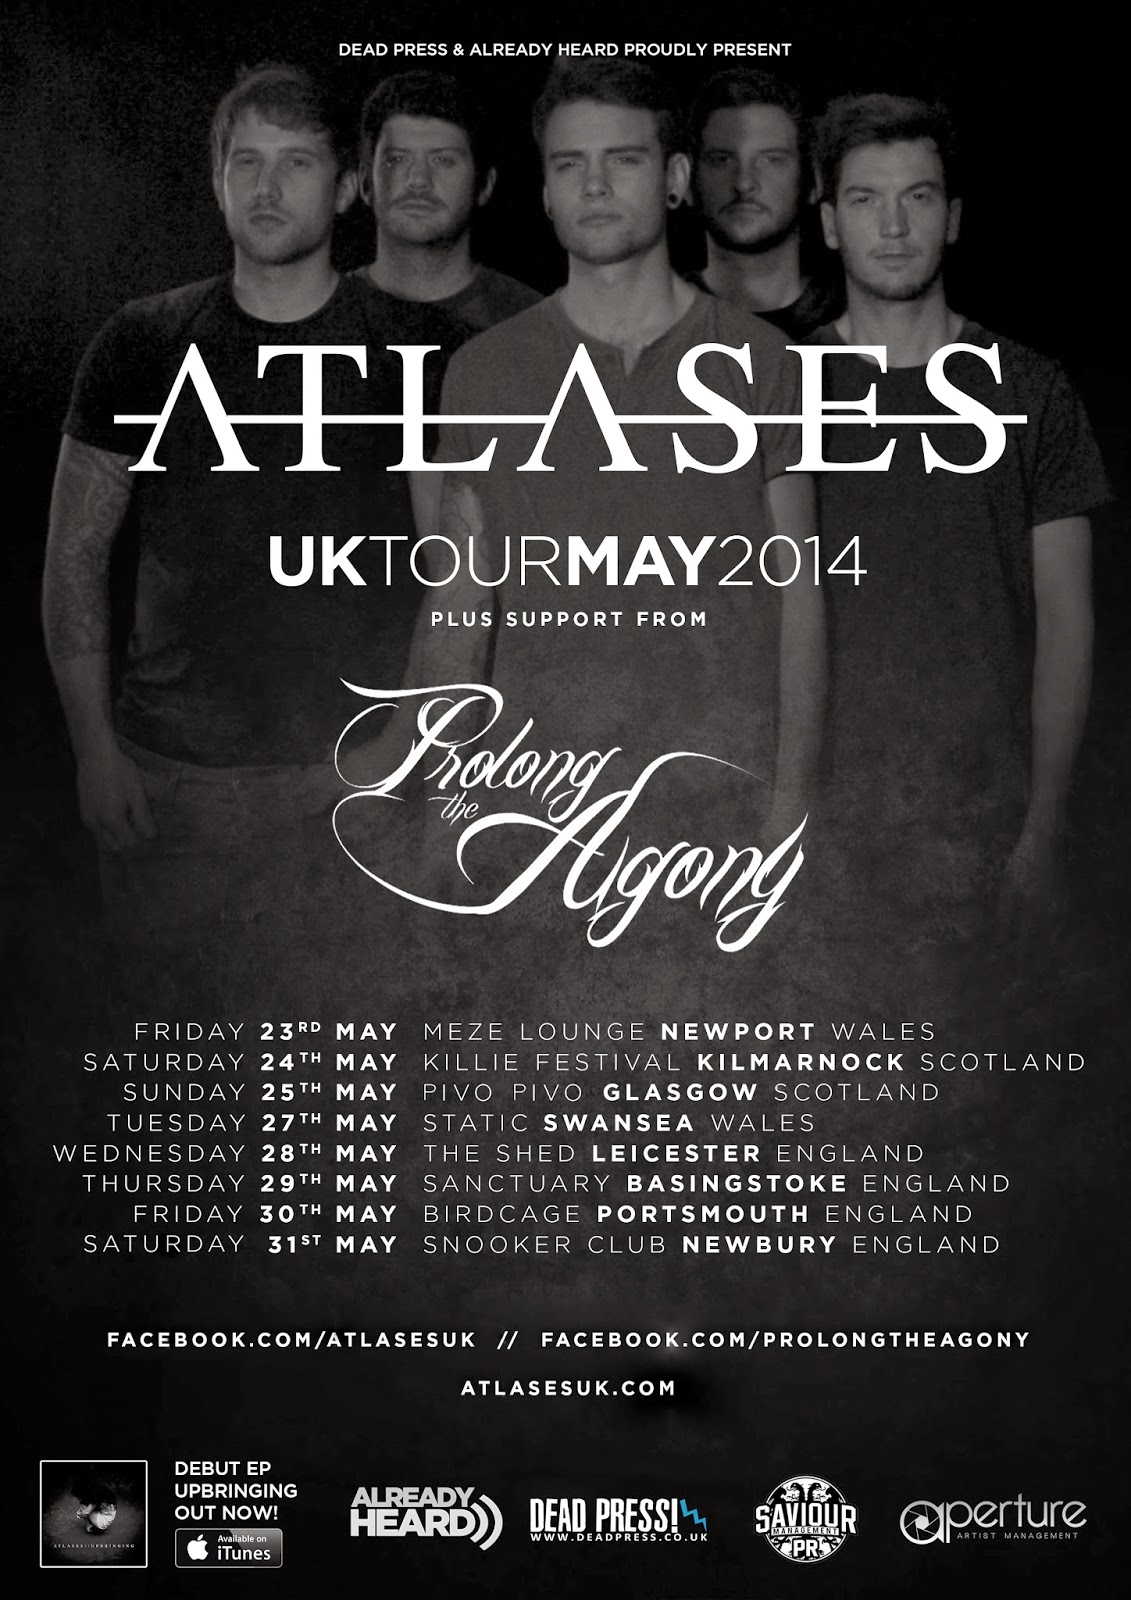 Atlases on the road with Upbringing Tour May 2014